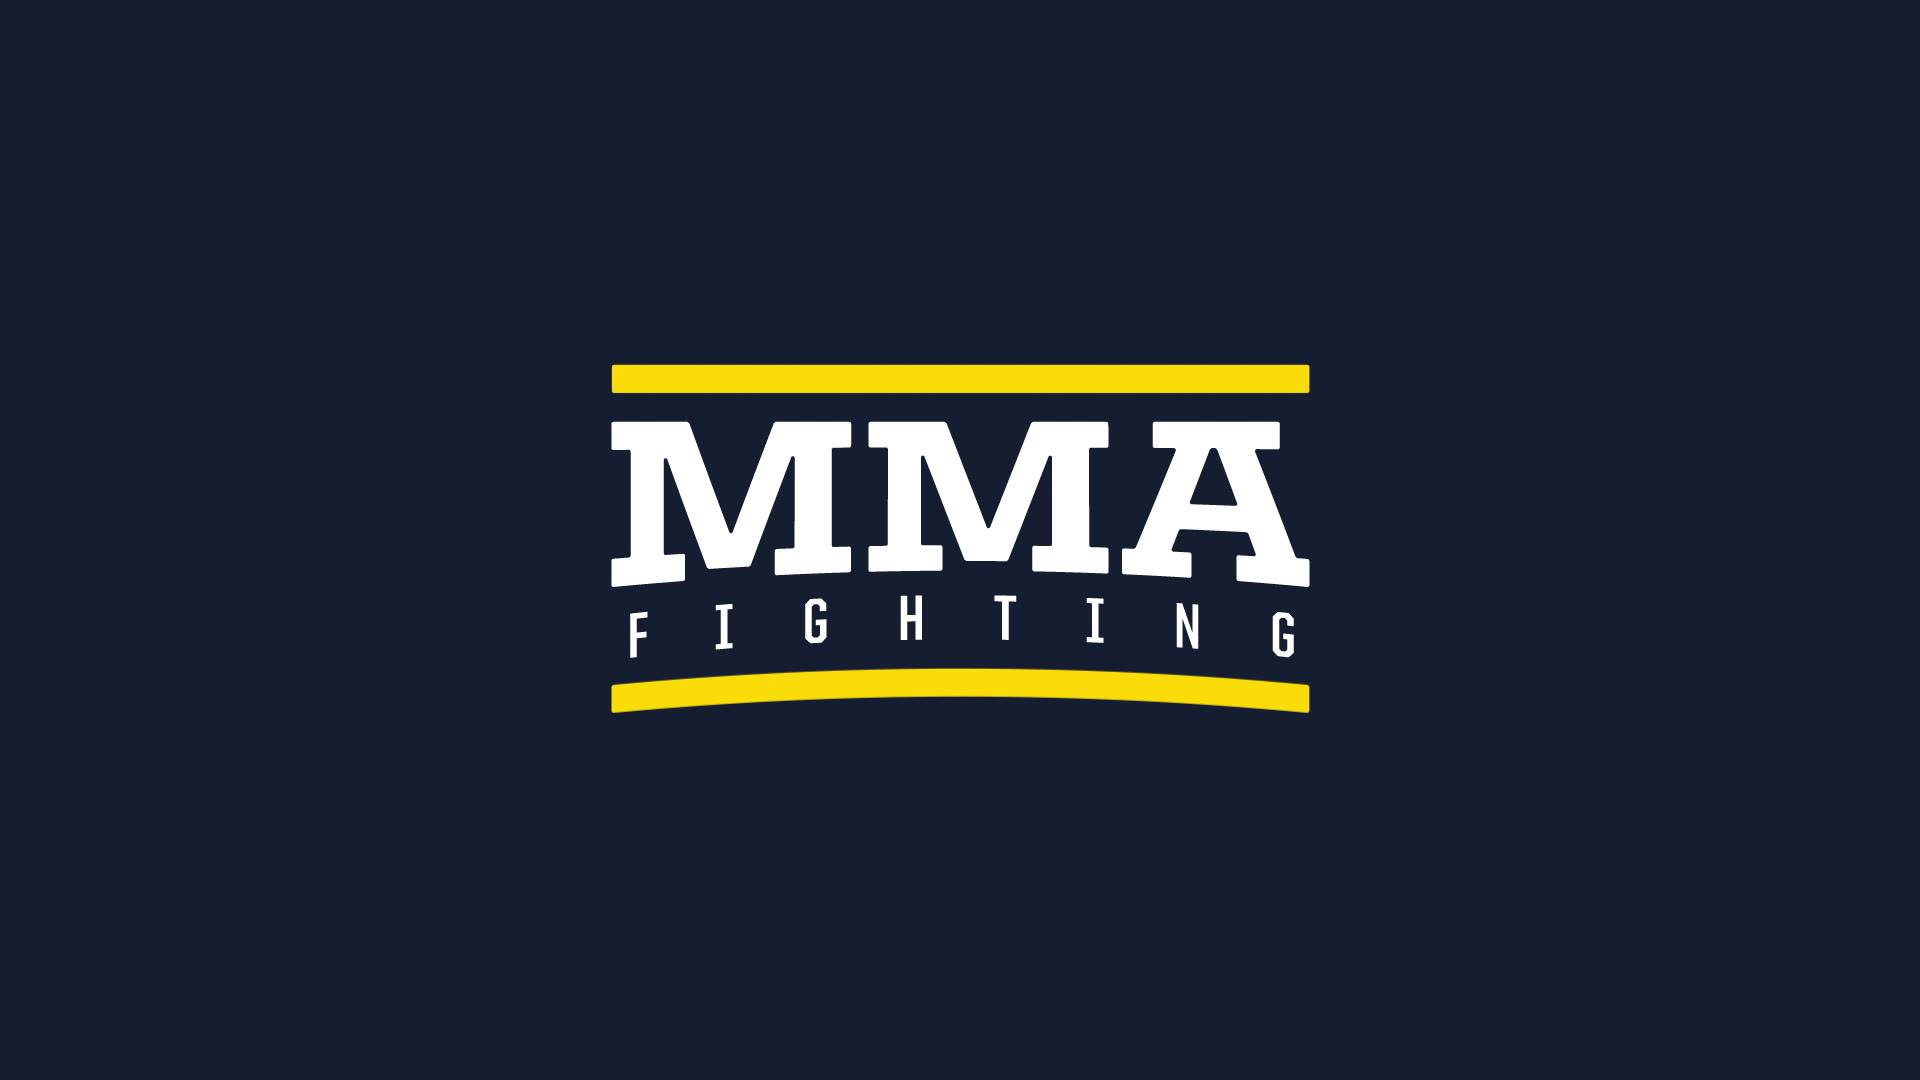 MMAFighting.com